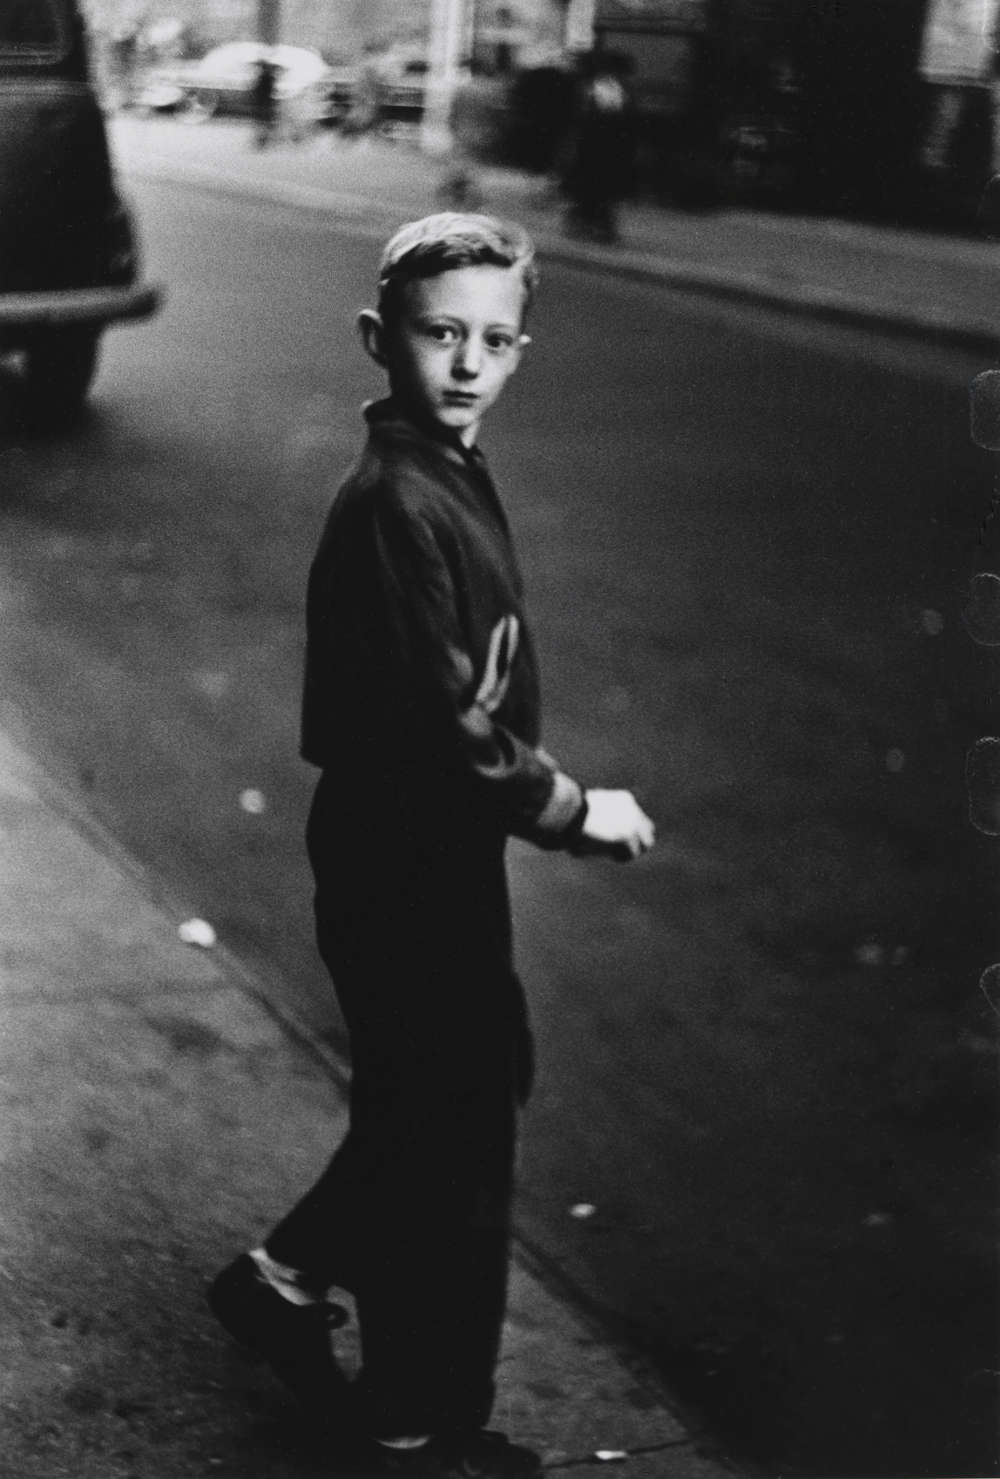 Boy stepping off the curb, N.Y.C. 1957–58. Image: 10 in. × 6 7/8 in. (25.4 × 17.4 cm) Collection of Jeffrey Fraenkel and Alan Mark. Courtesy The Metropolitan Museum of Art, New York. Copyright © The Estate of Diane Arbus, LLC. All Rights Reserved